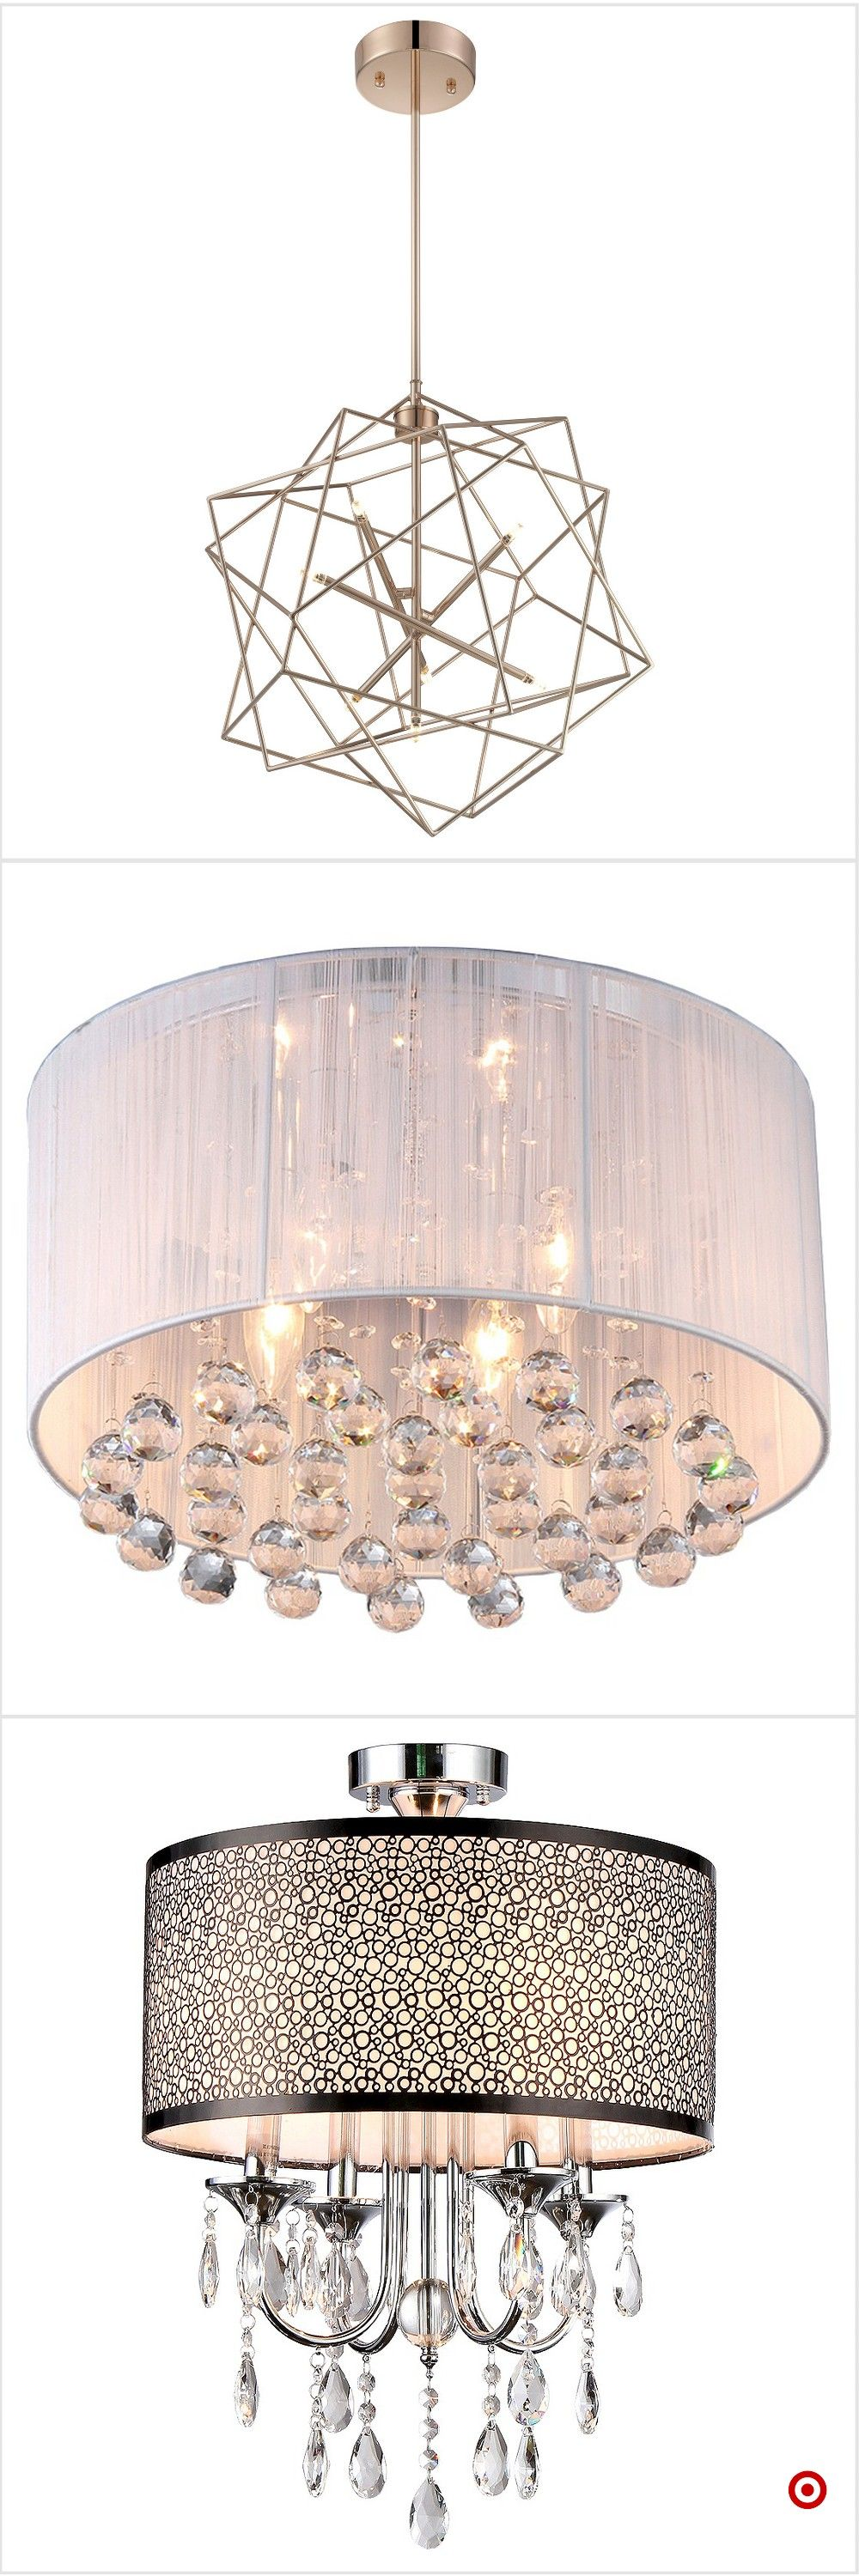 Shop Target For Ceiling Lights You Will Love At Great Low Prices - Target bathroom lighting